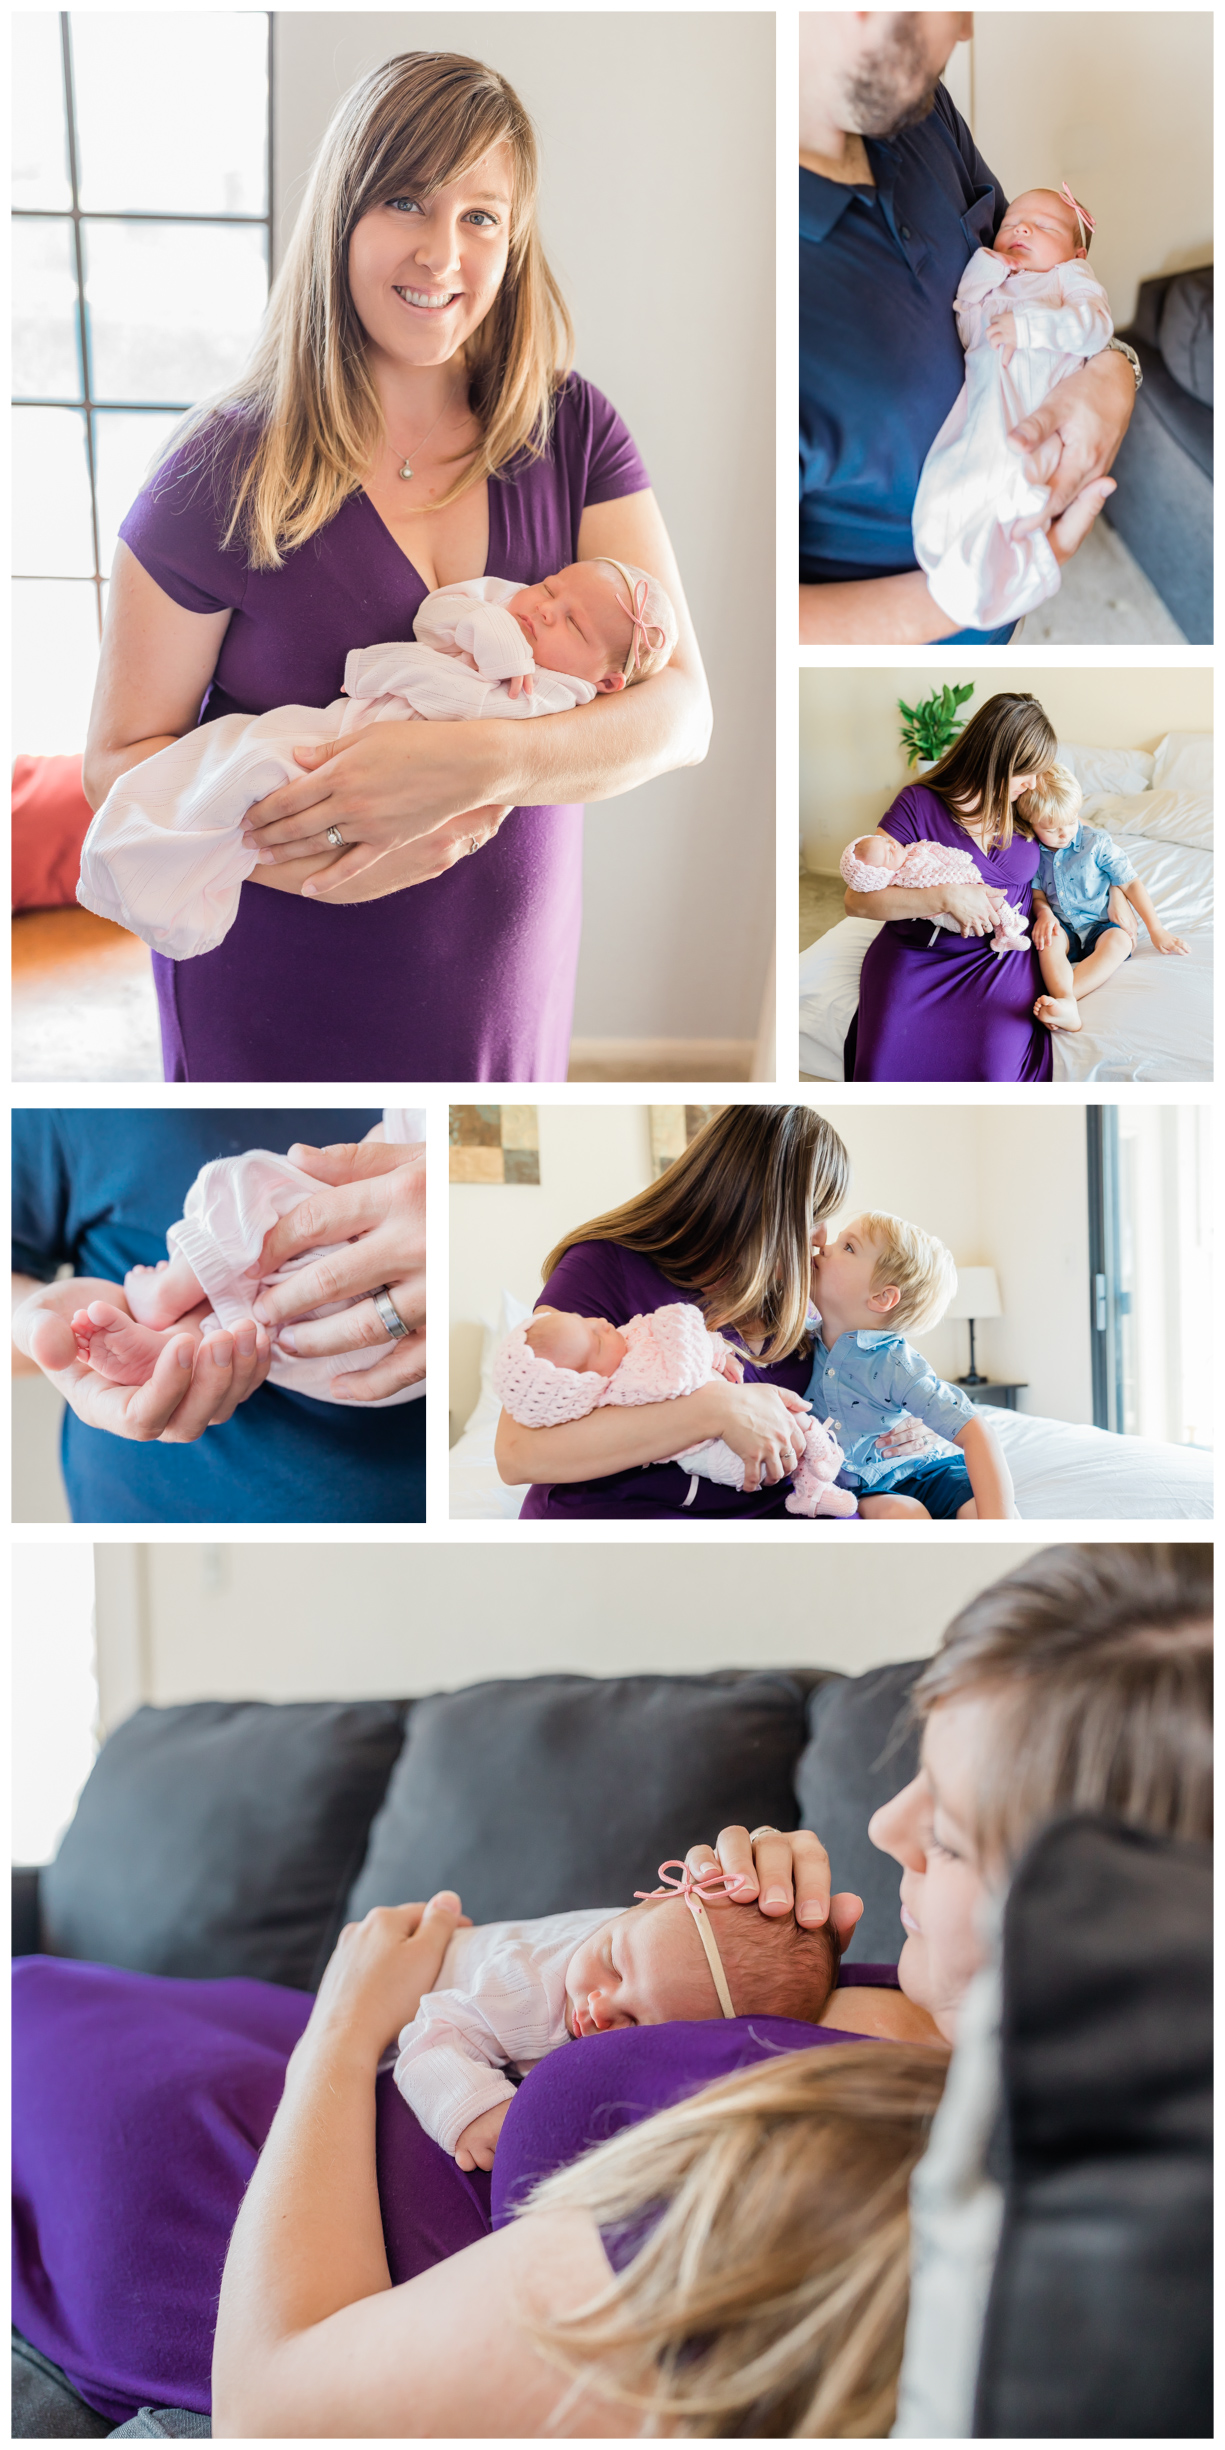 collage of photos from an in home newborn lifestyle session. Mom is wearing a purple dress, baby is dressed in pink and brother is in blue